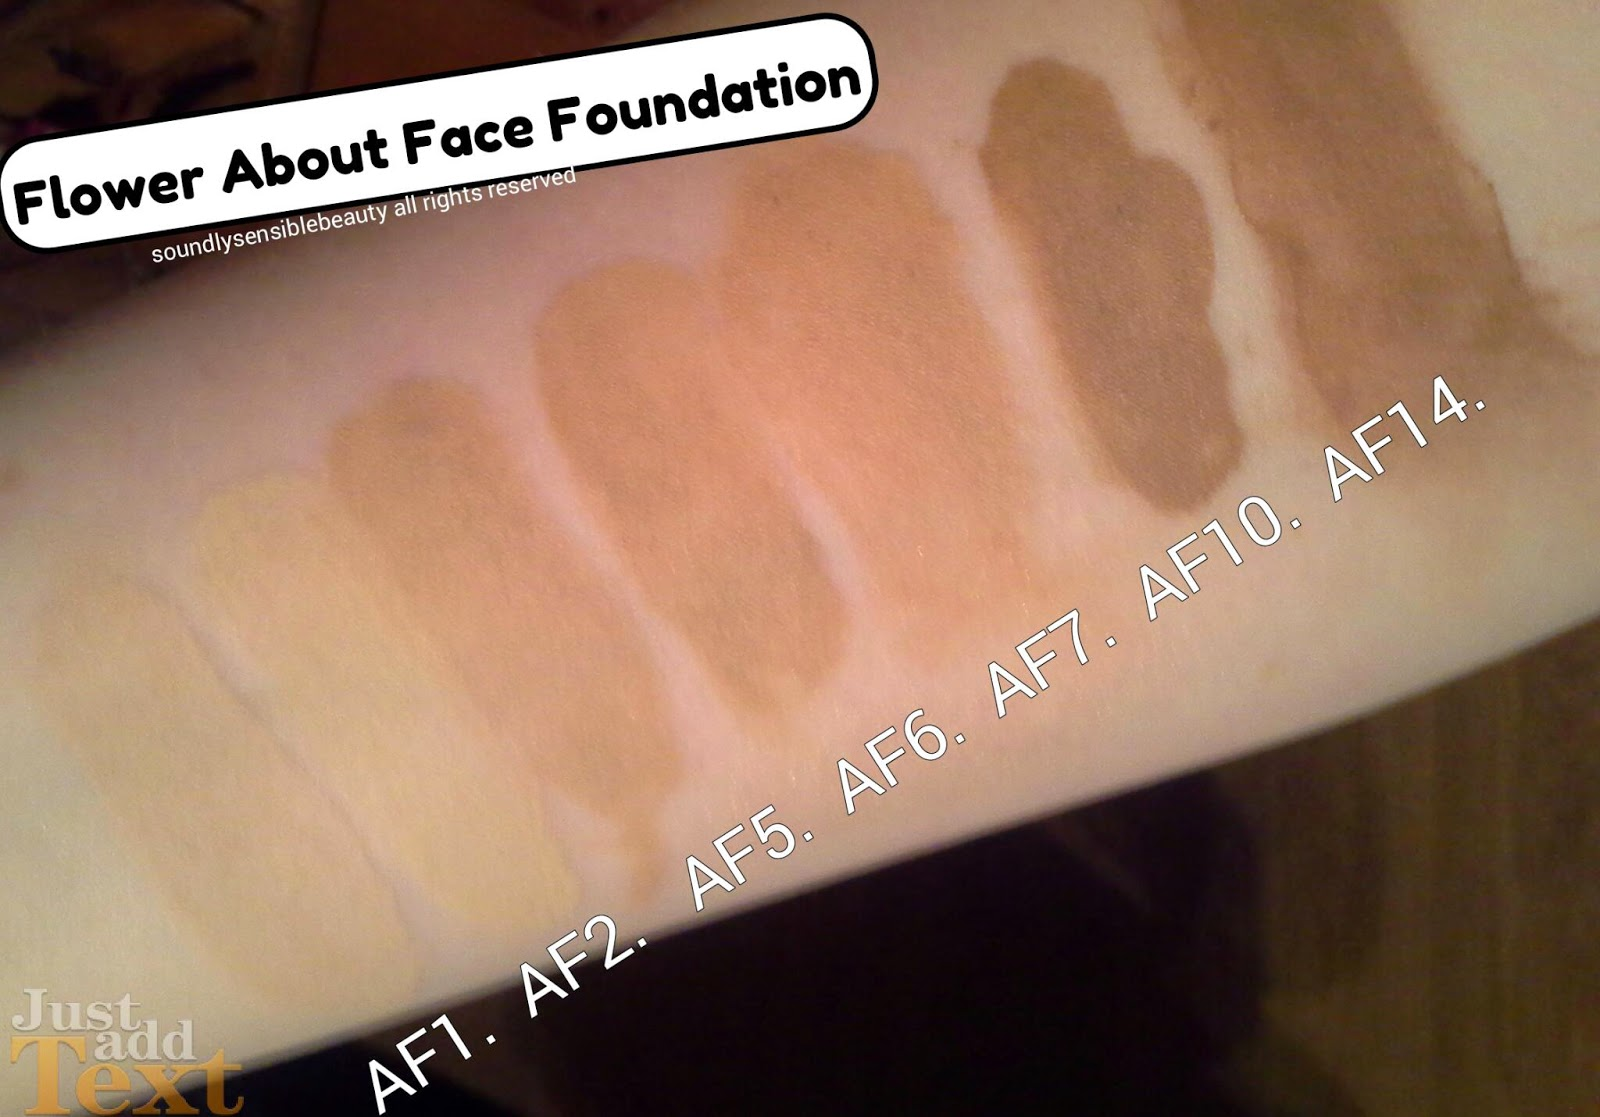 Flower By Drew Barymore About Face Foundation Review Swatches Of